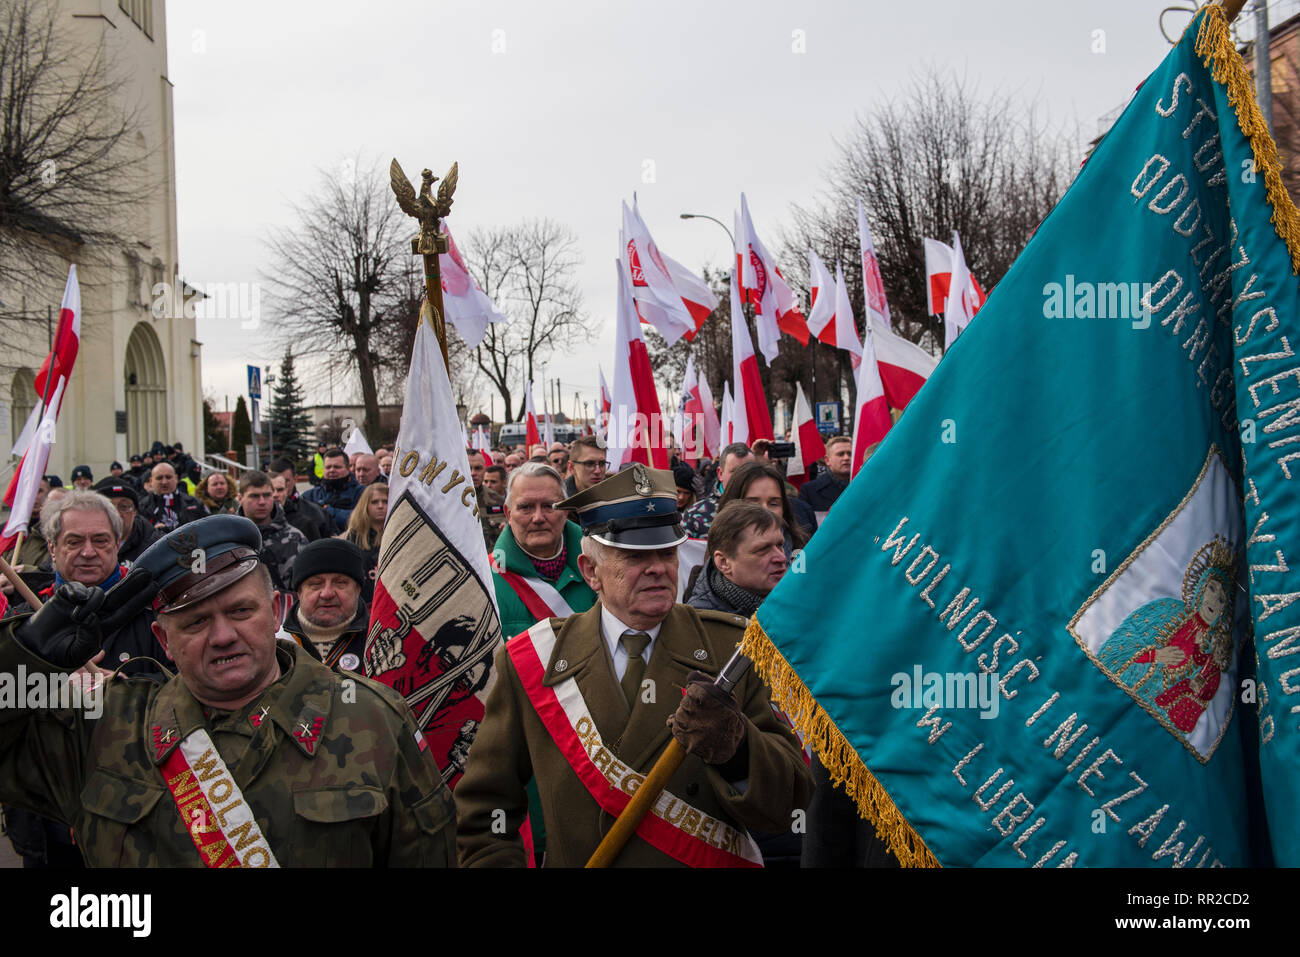 """Nationalists seen singing the Polish anthem during the march. Polish nationalists organized a commemorative march of the """"Cursed Soldiers"""" in the city of Hajnowka next to the Belarusian border. The Cursed Soldiers also known as the Doomed Soldiers were anti-communist resistant fighters after WWII, however they were also famous of committing crimes against civilians, mostly ethnic Belarusians. - Stock Image"""